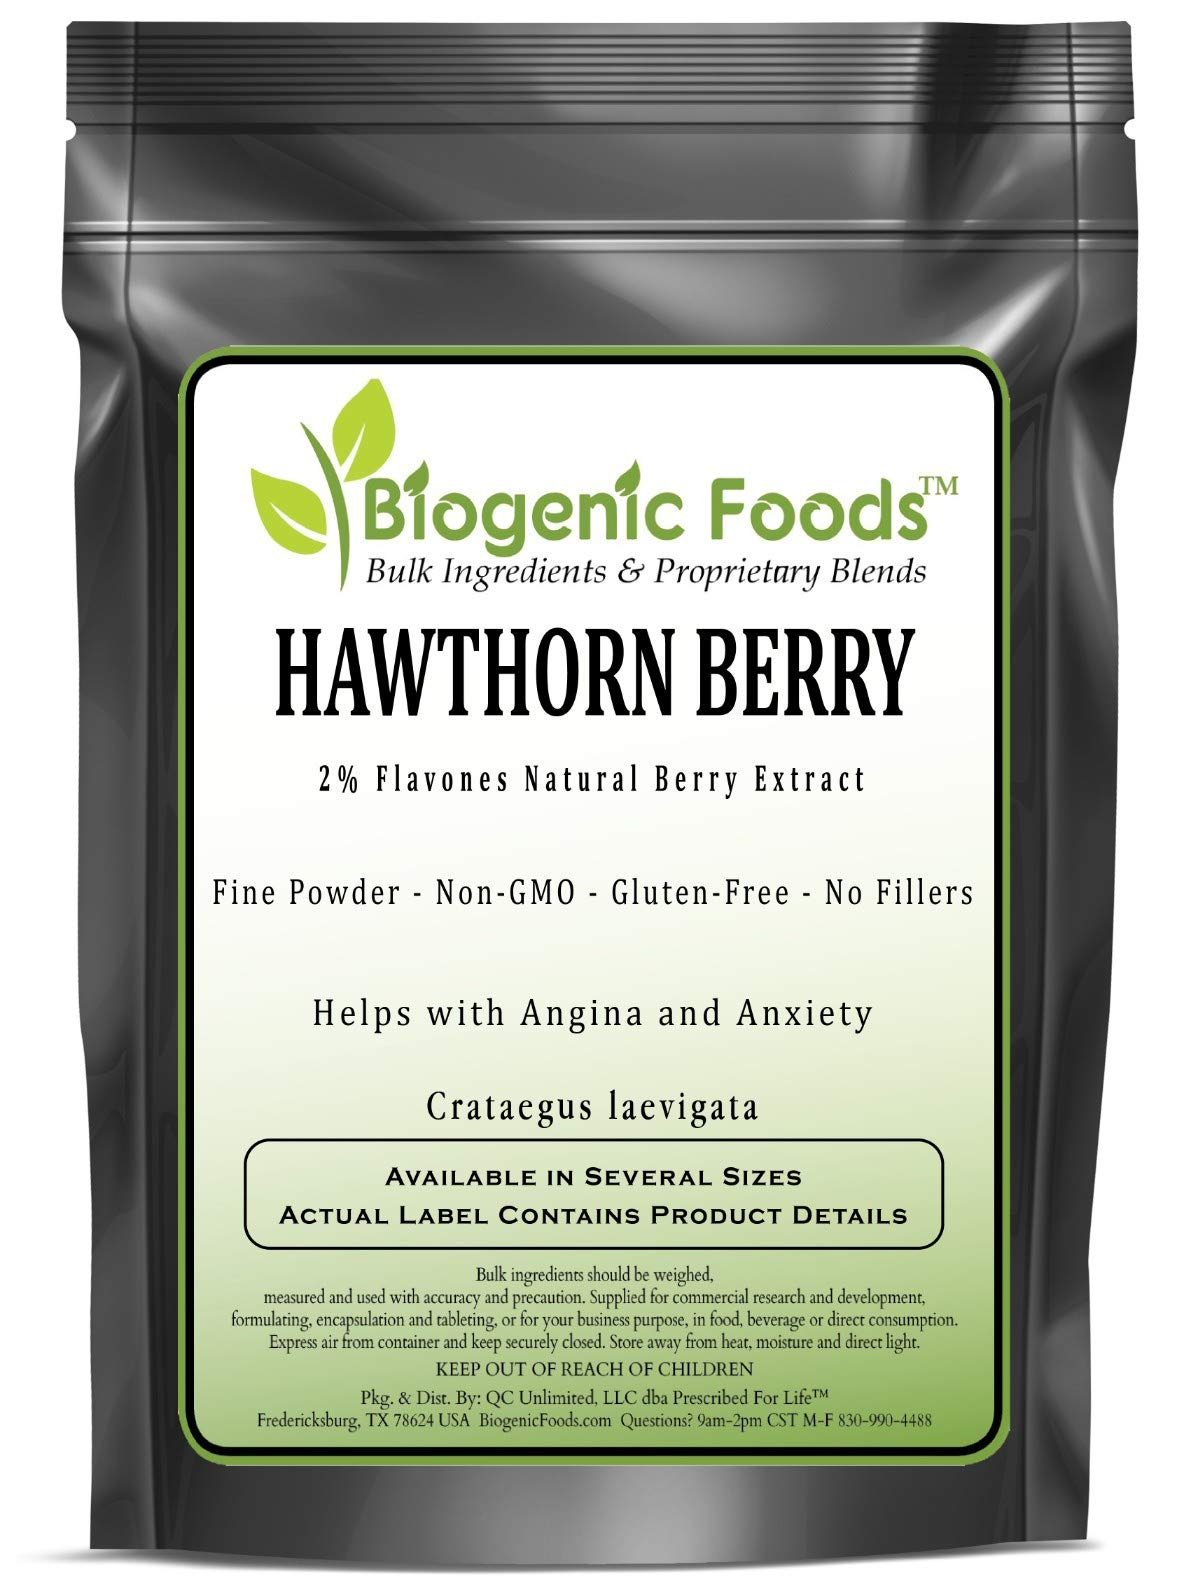 Hawthorn Berry - 2% Flavones Natural Berry Fine Powder Extract (Crataegus laevigata), 2 kg